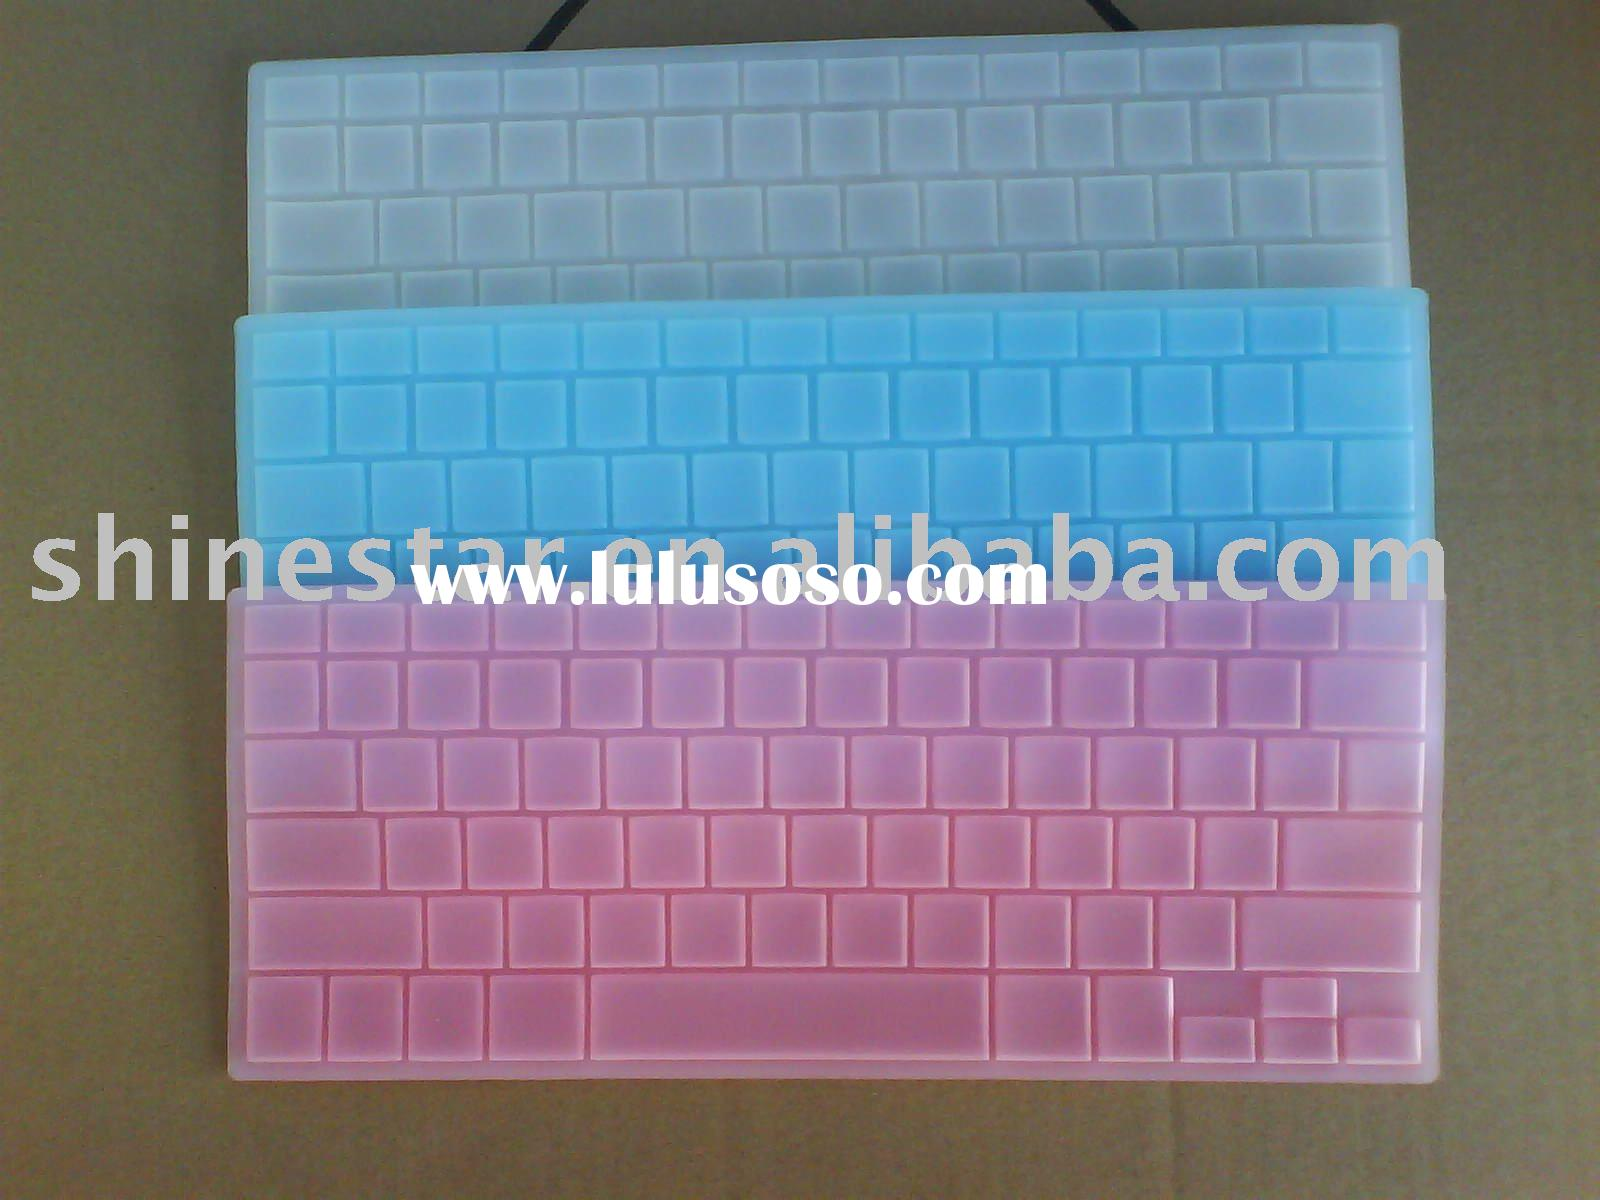 laptop keyboard skin cover glow in dark